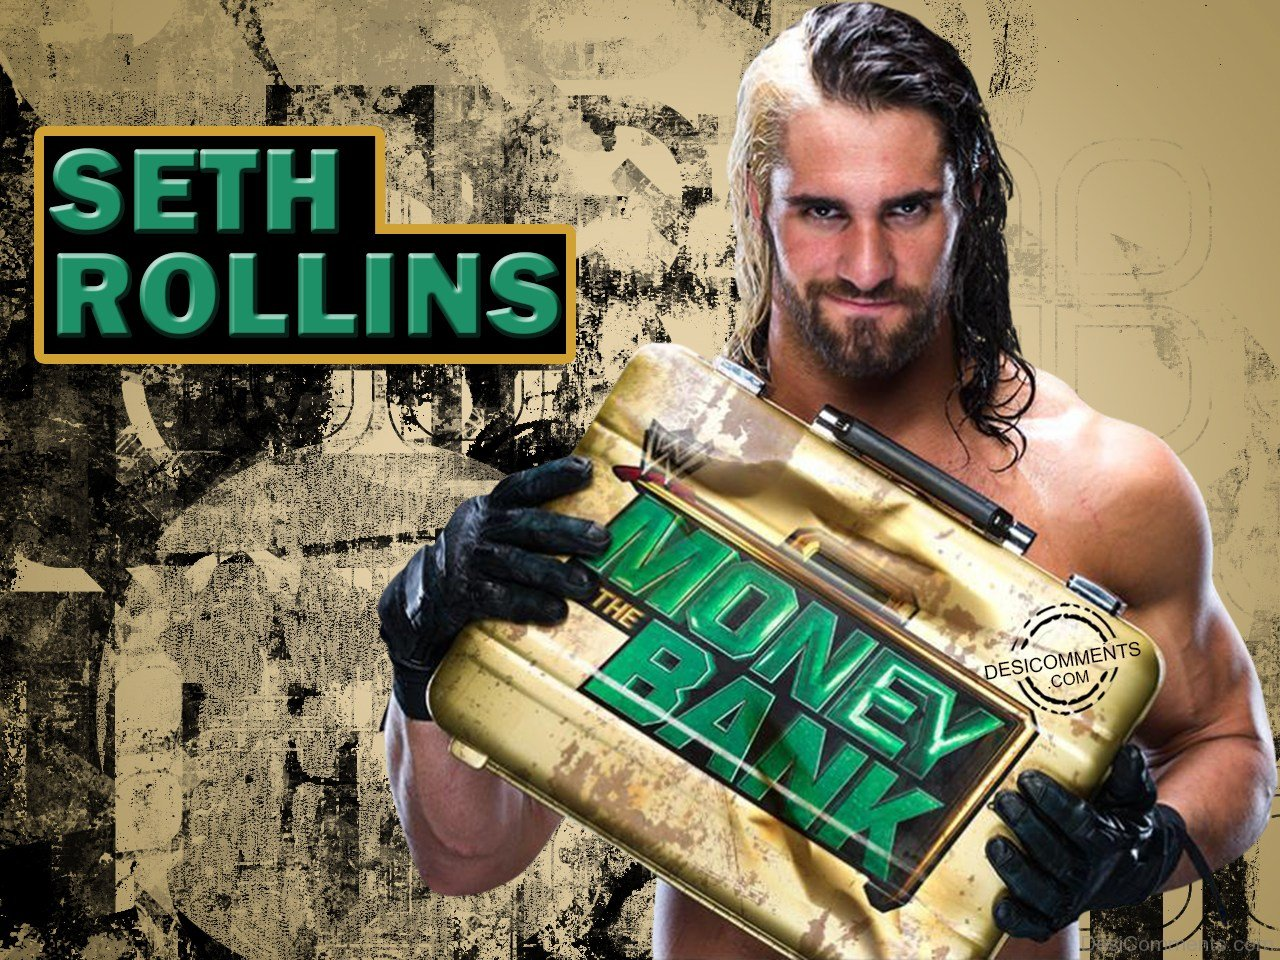 Bollywood Love Wallpapers With Quotes Wwe Superstar Seth Rollins Desicomments Com